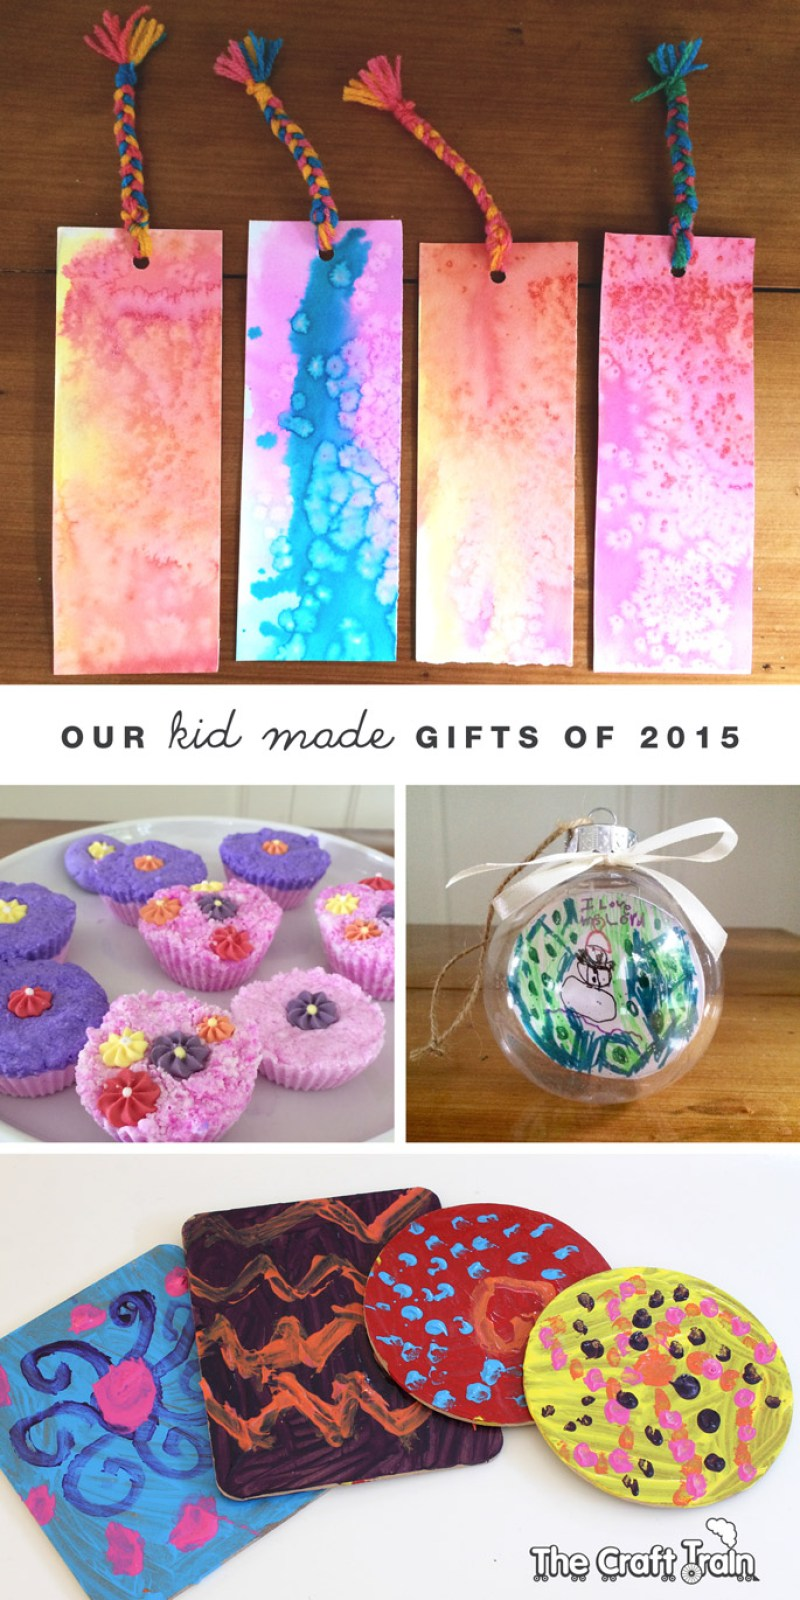 Our kid-made gifts of 2015 - lots of inspiration here!